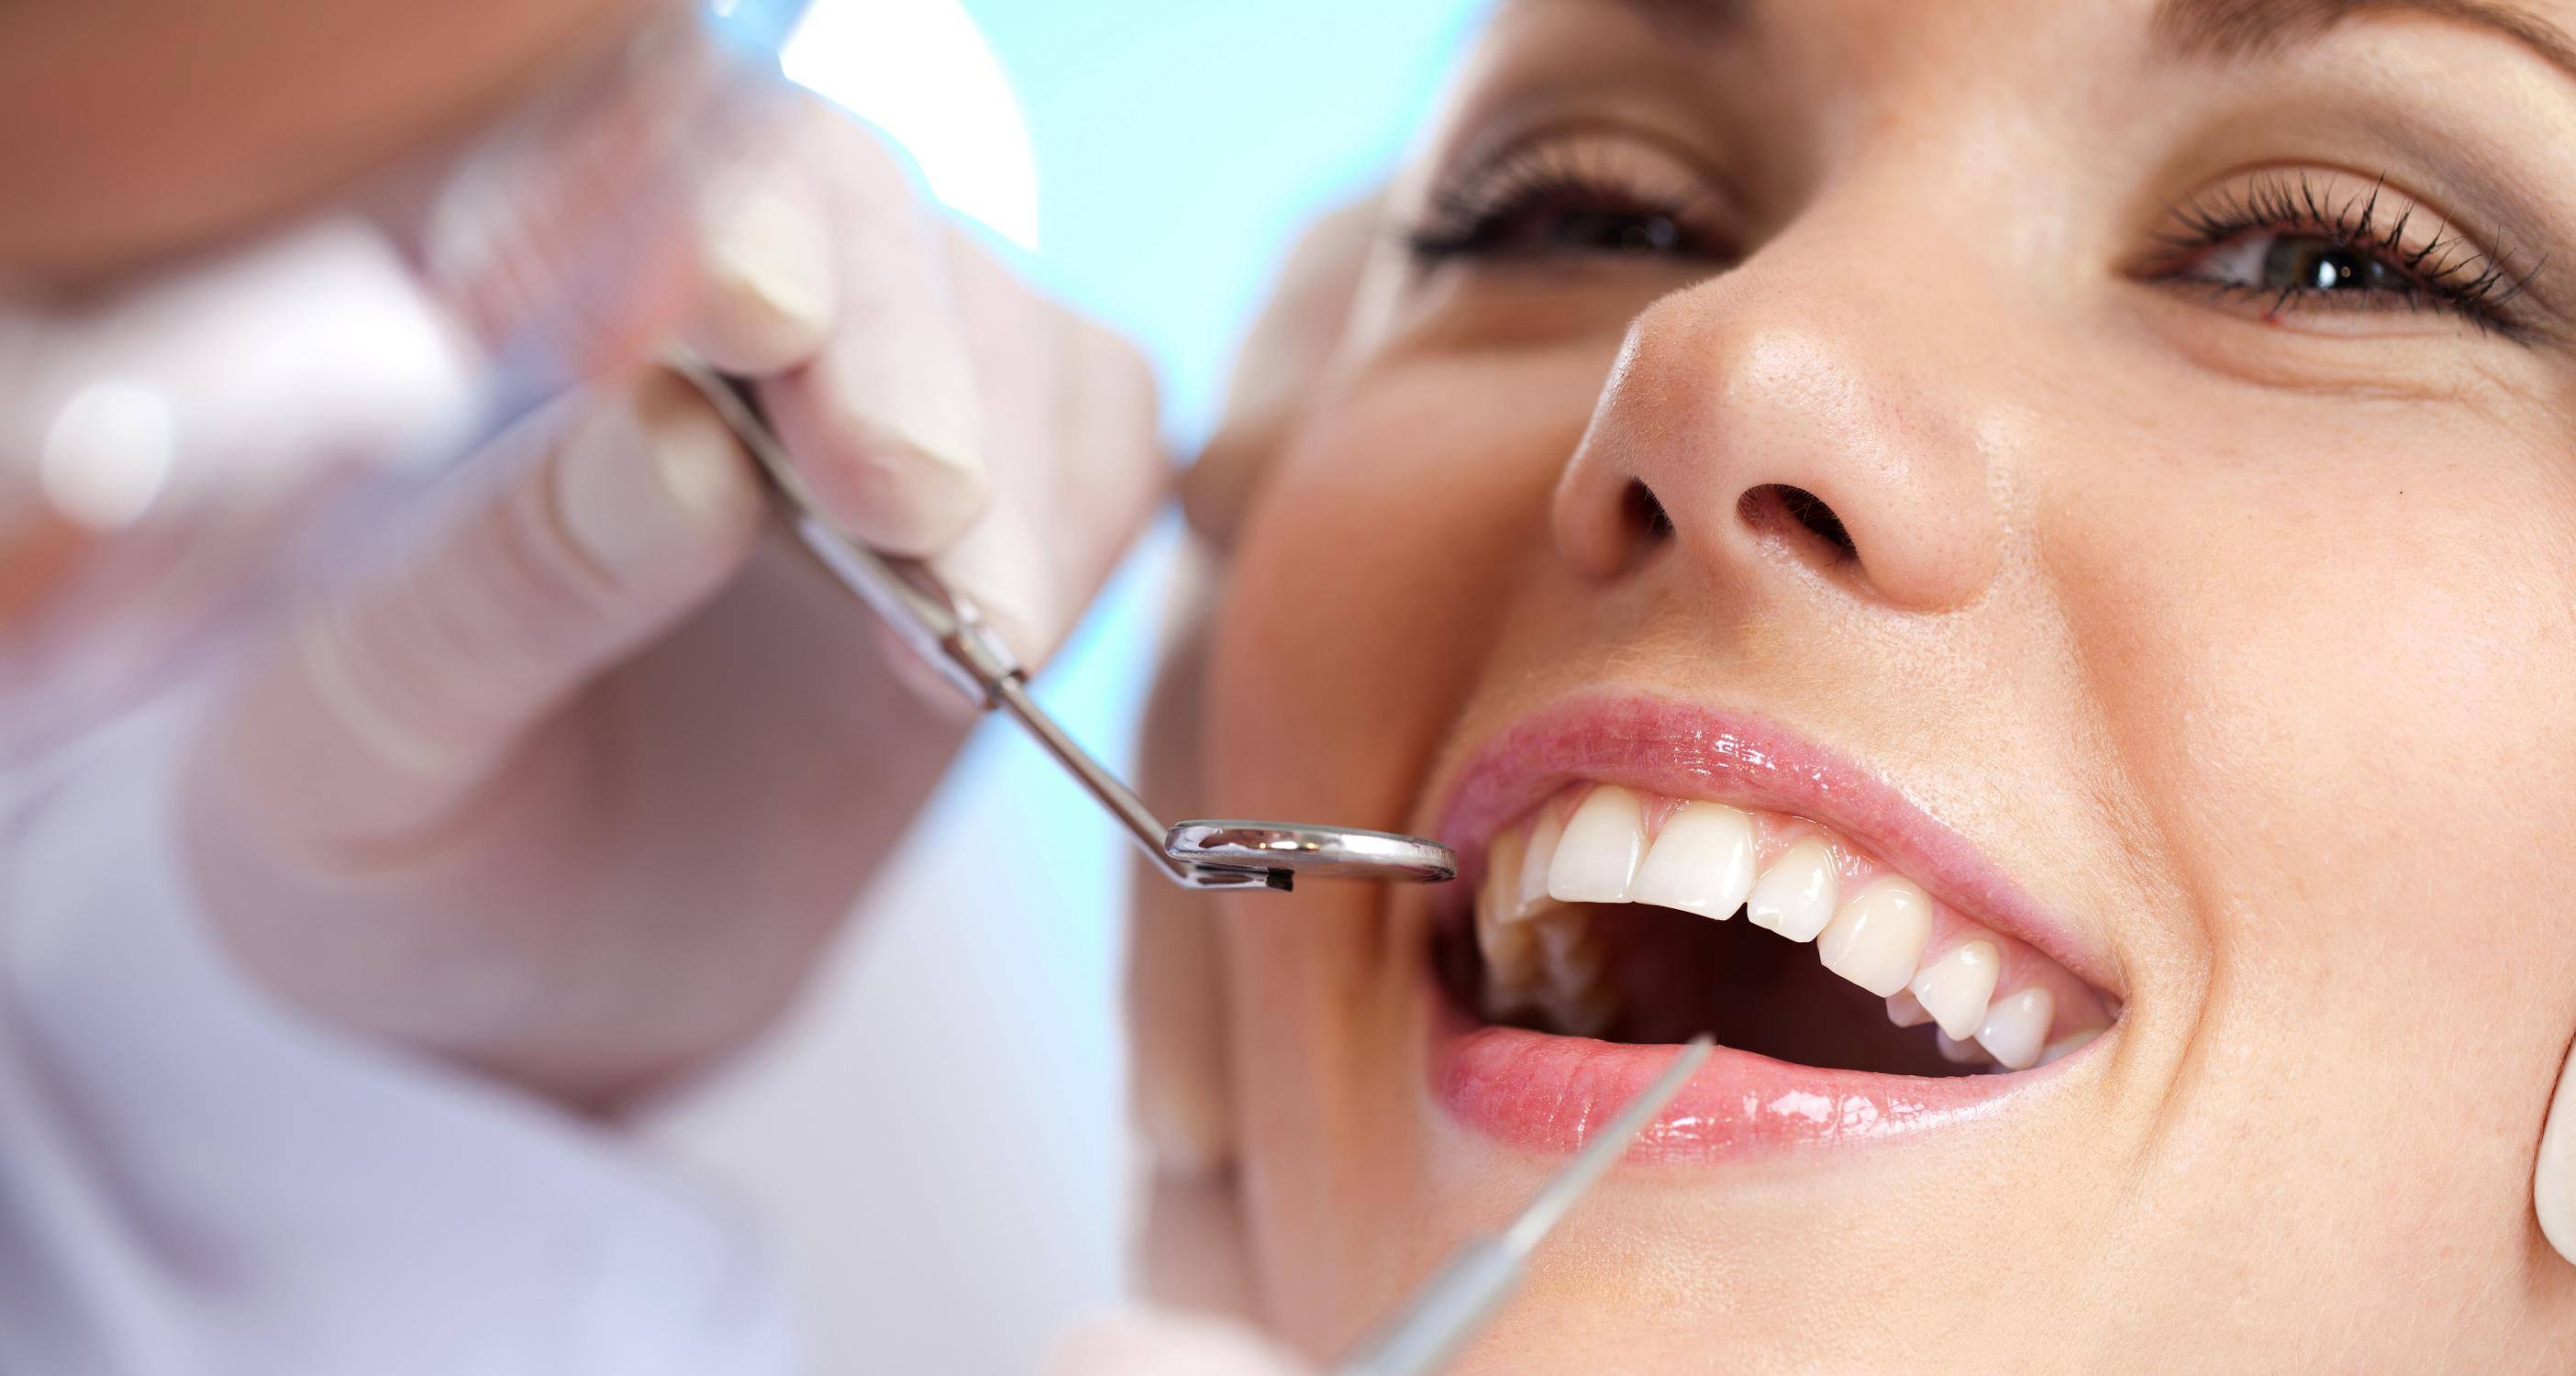 Dental Discount Plans Instead of Dental Insurance